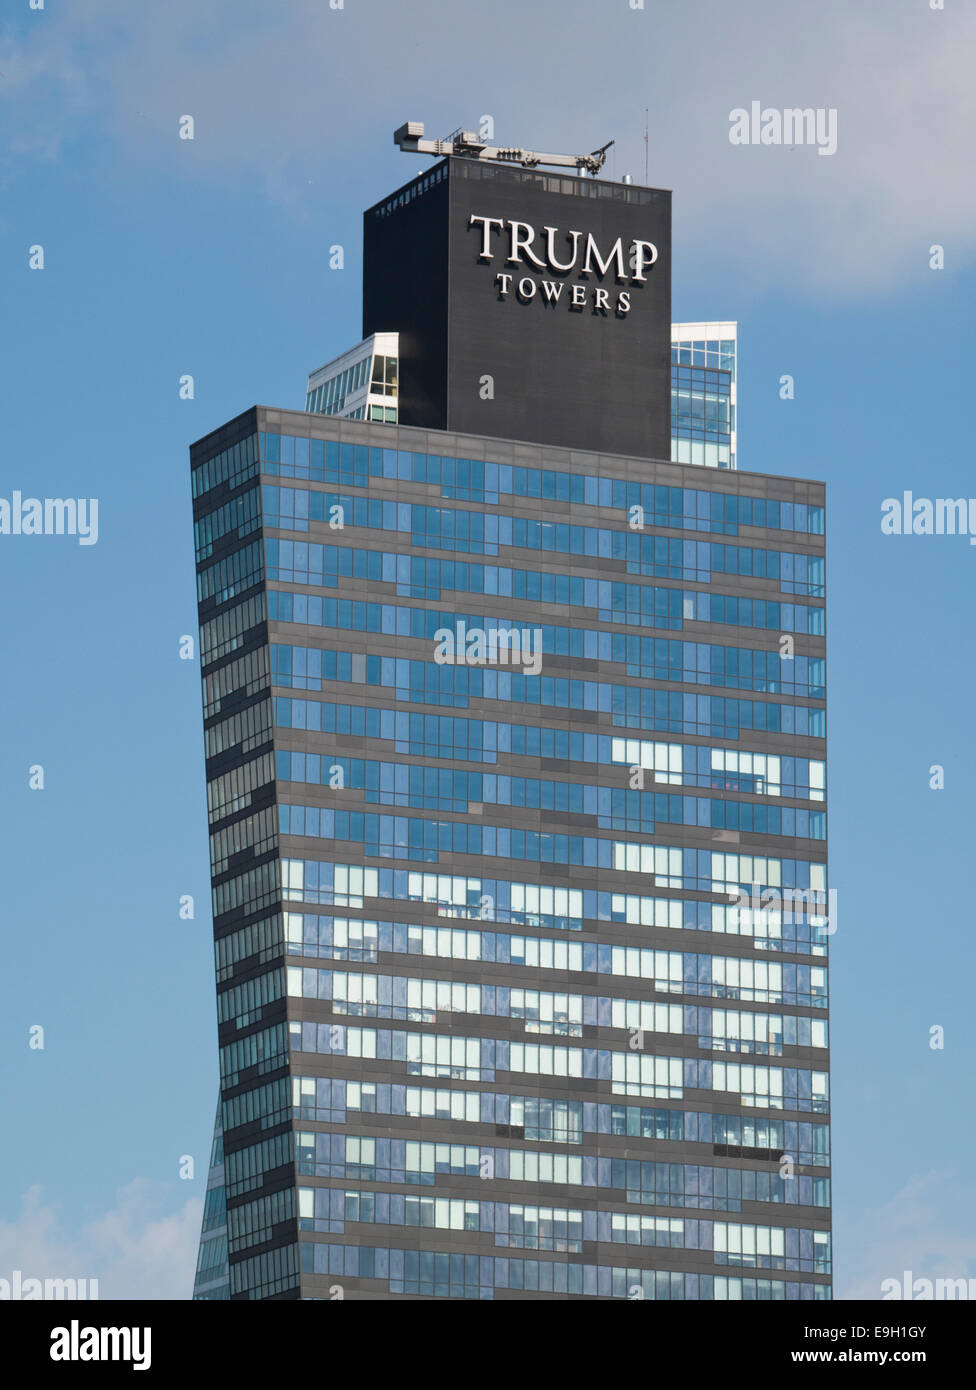 Trump Towers in Istanbul Stockbild